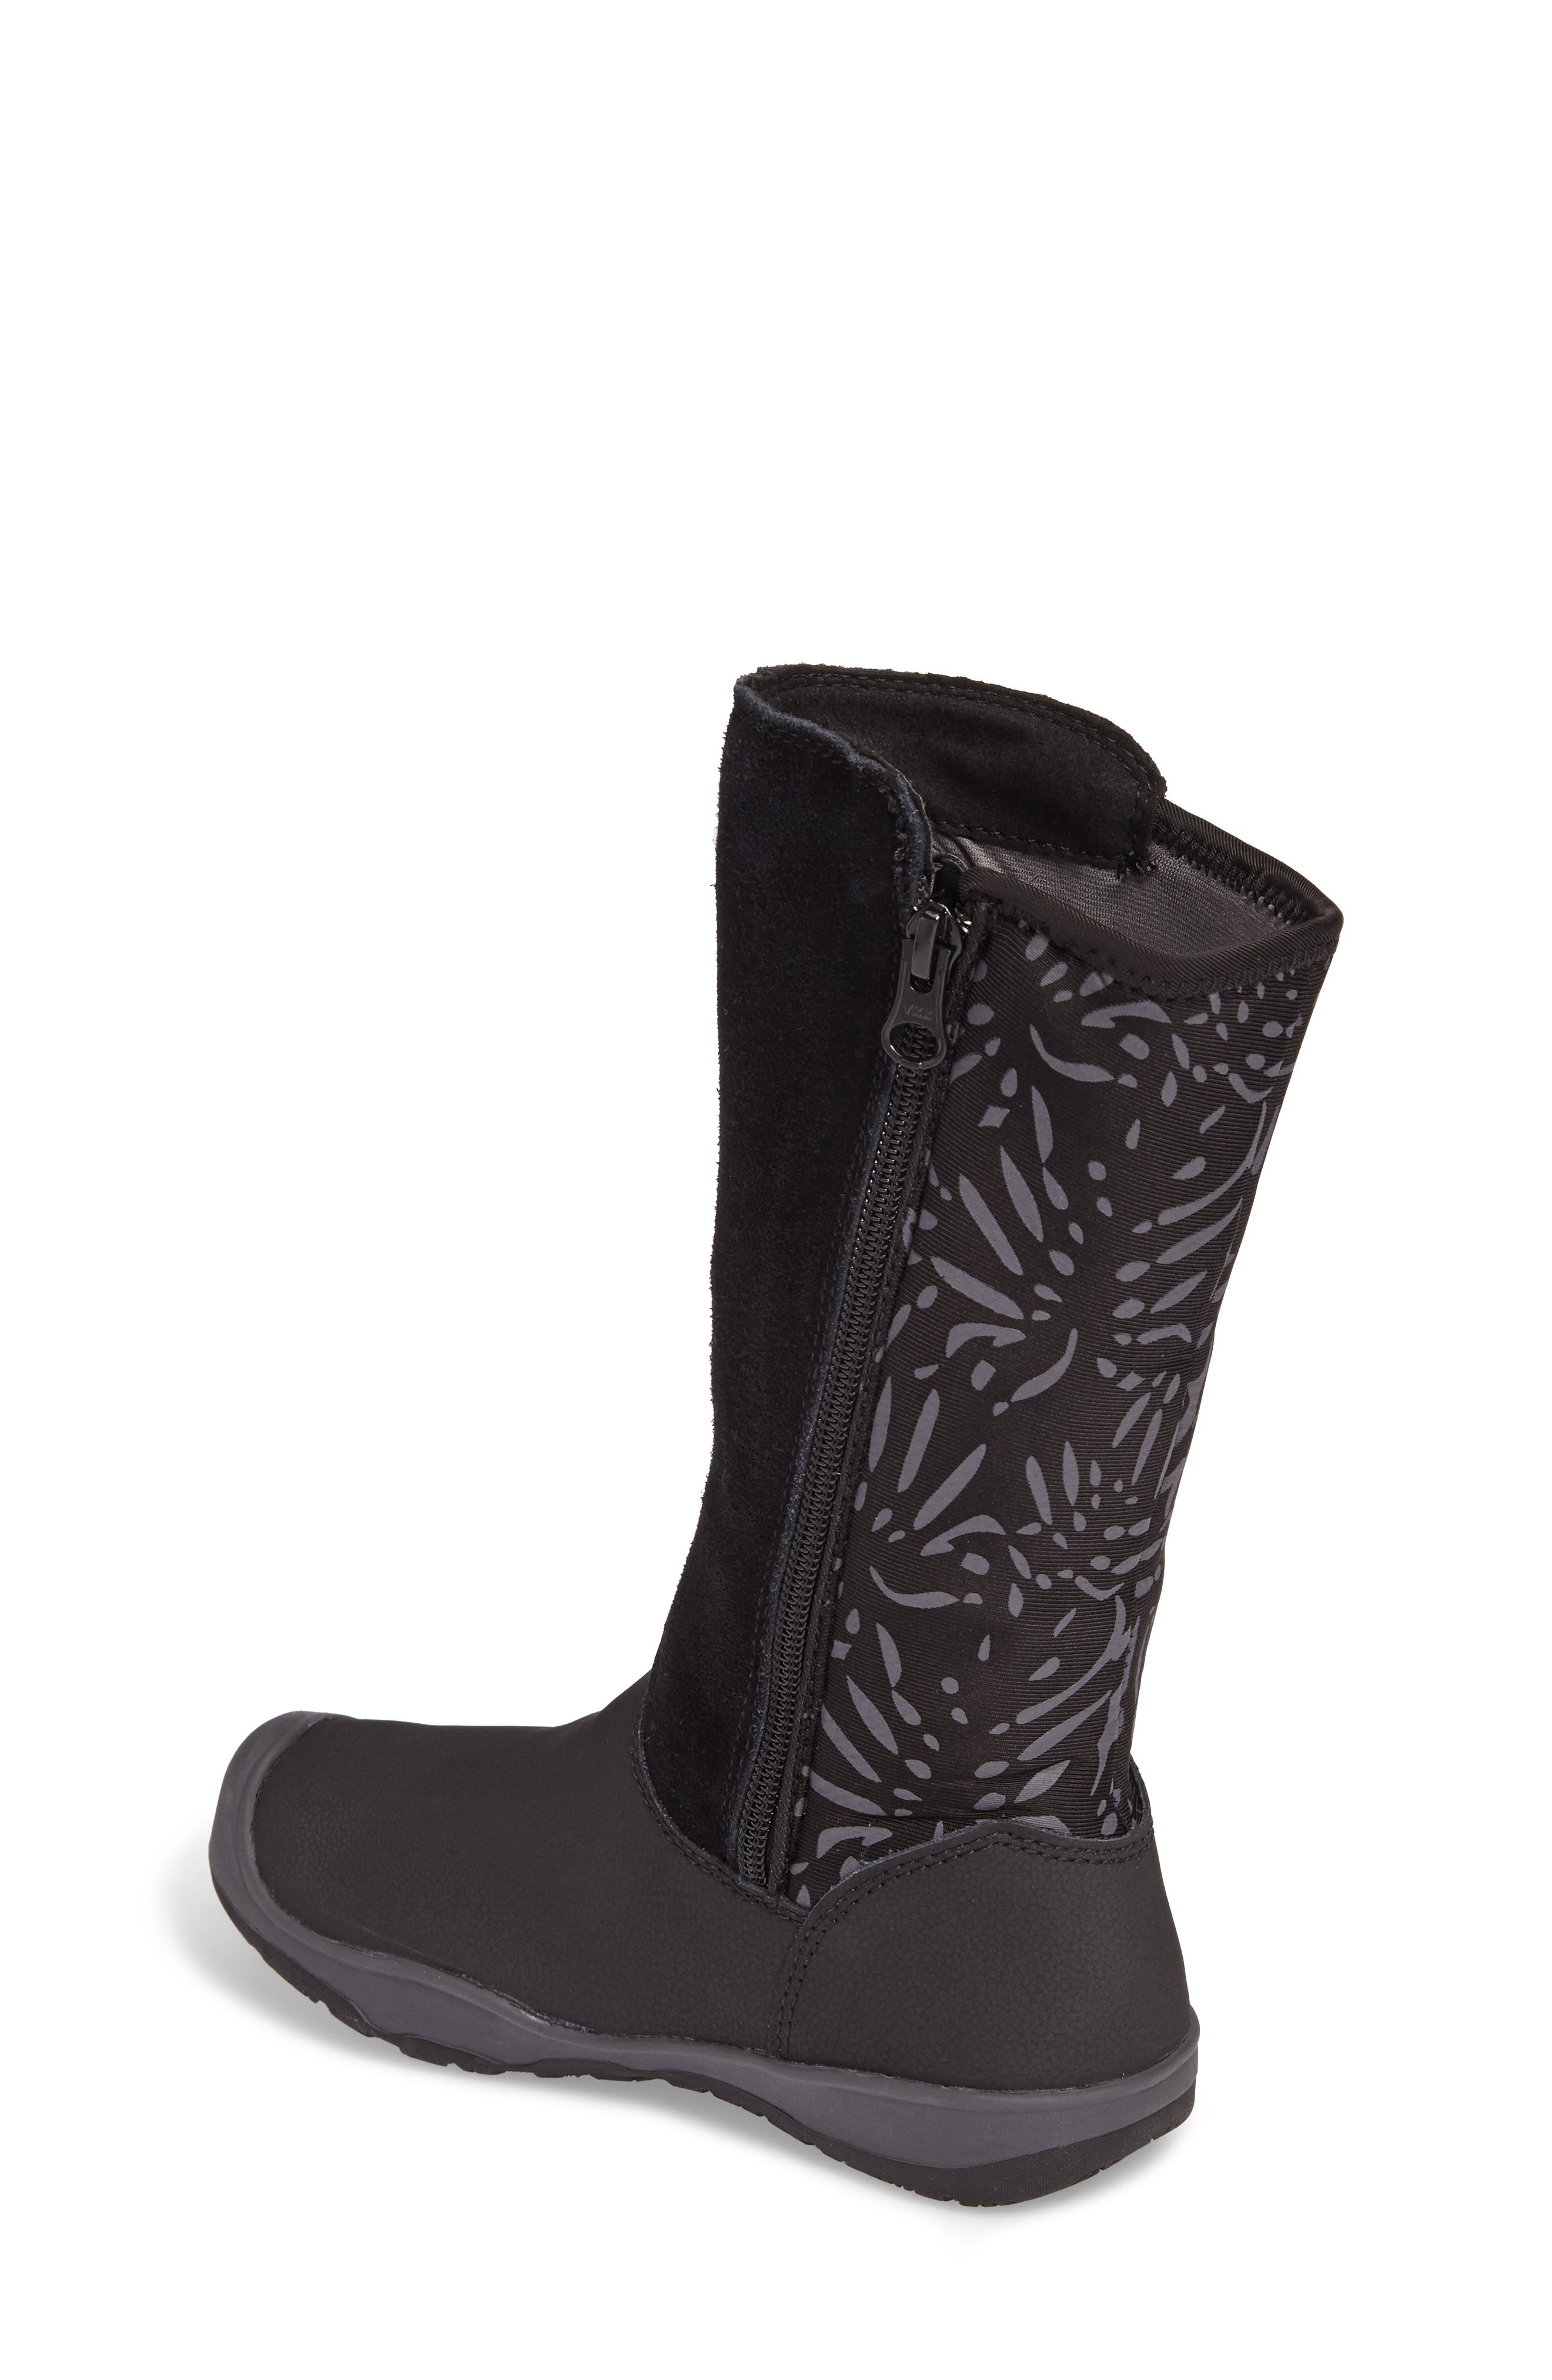 Moxie Tall Waterproof Boot,                             Alternate thumbnail 2, color,                             Black/ Magnet